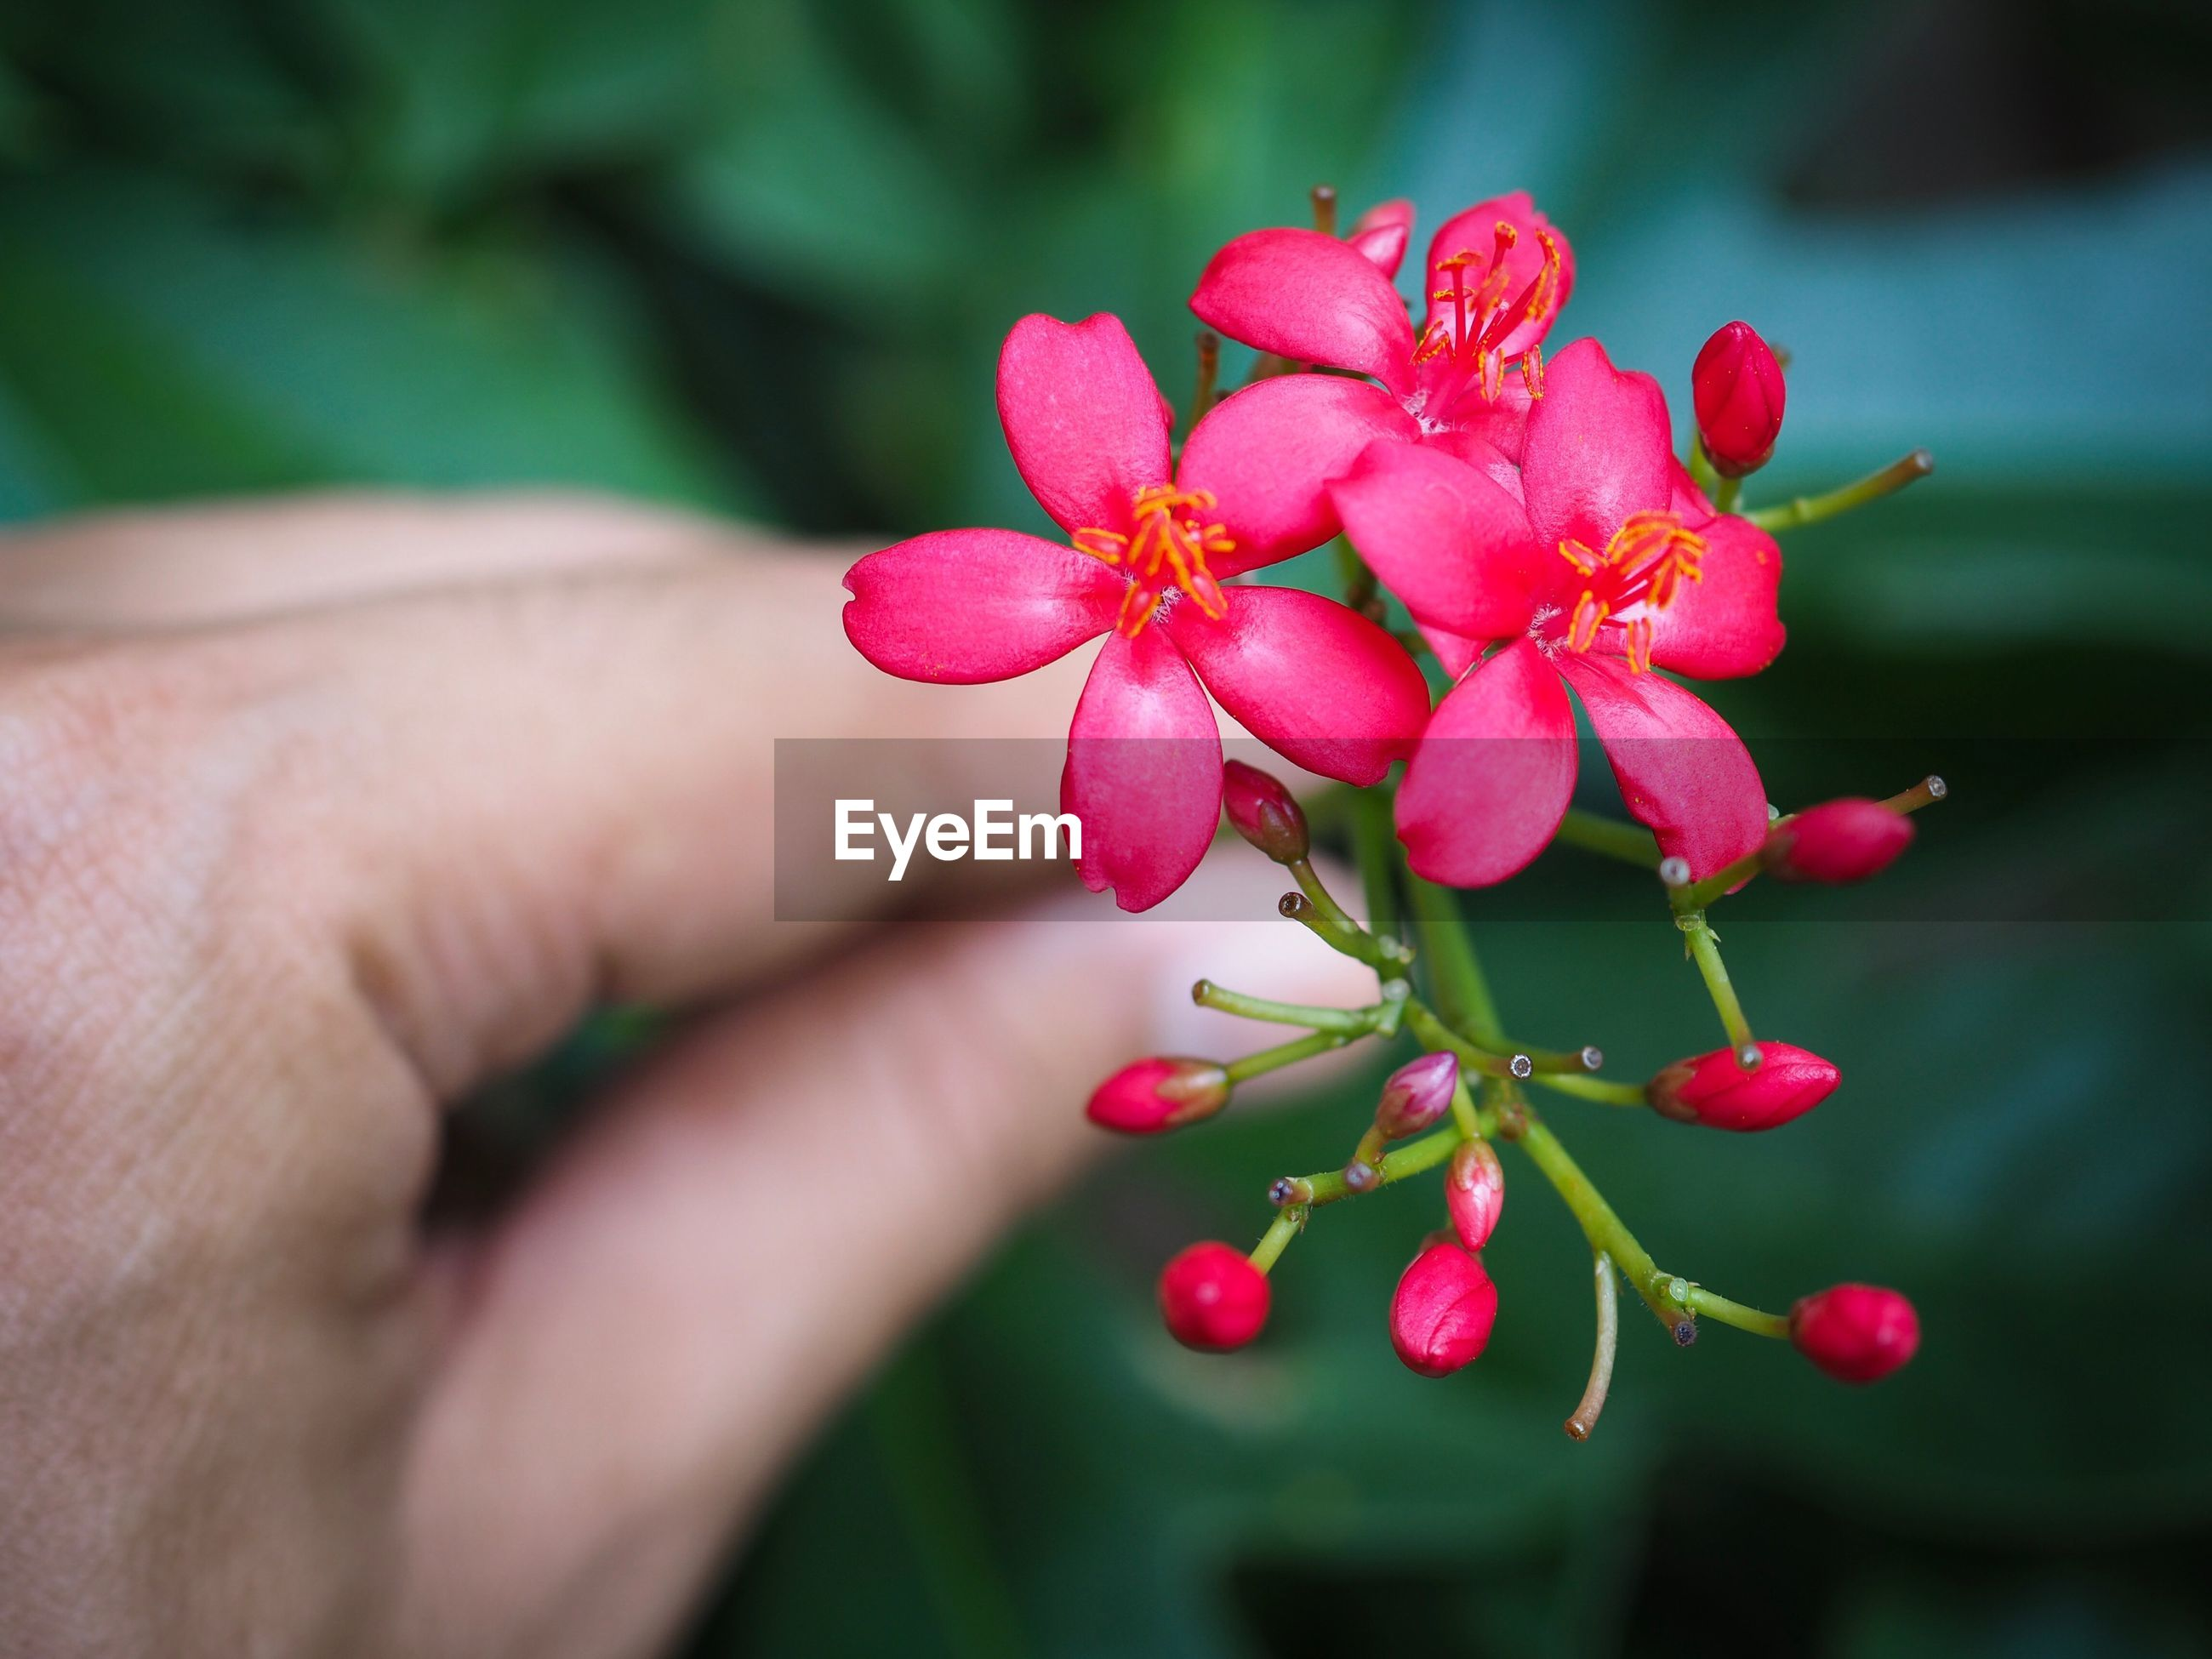 Close-up of hand holding pink flowers